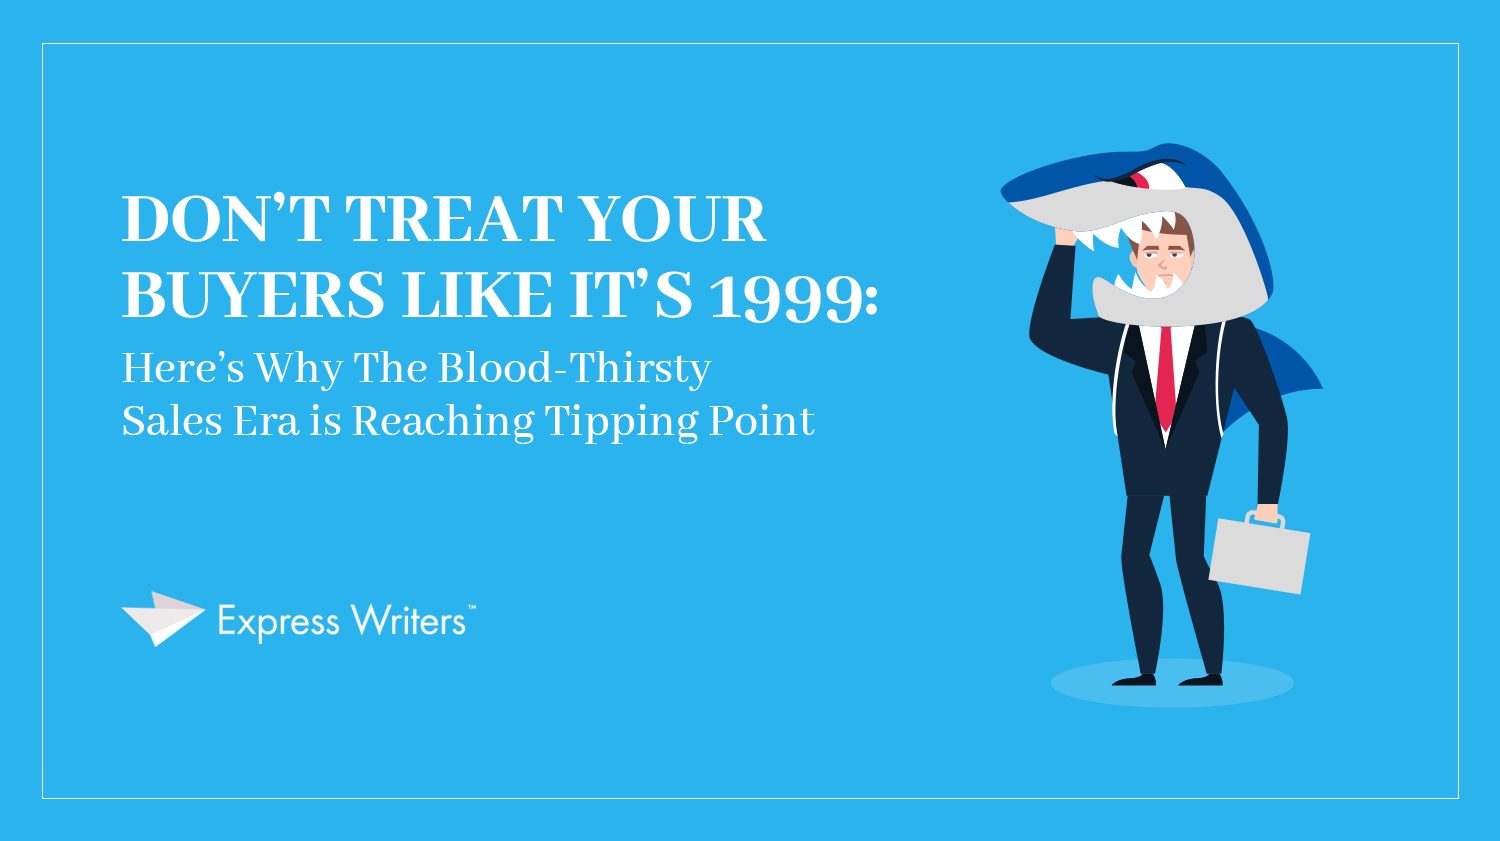 don't treat your buyers like it's 1999 sales and customers